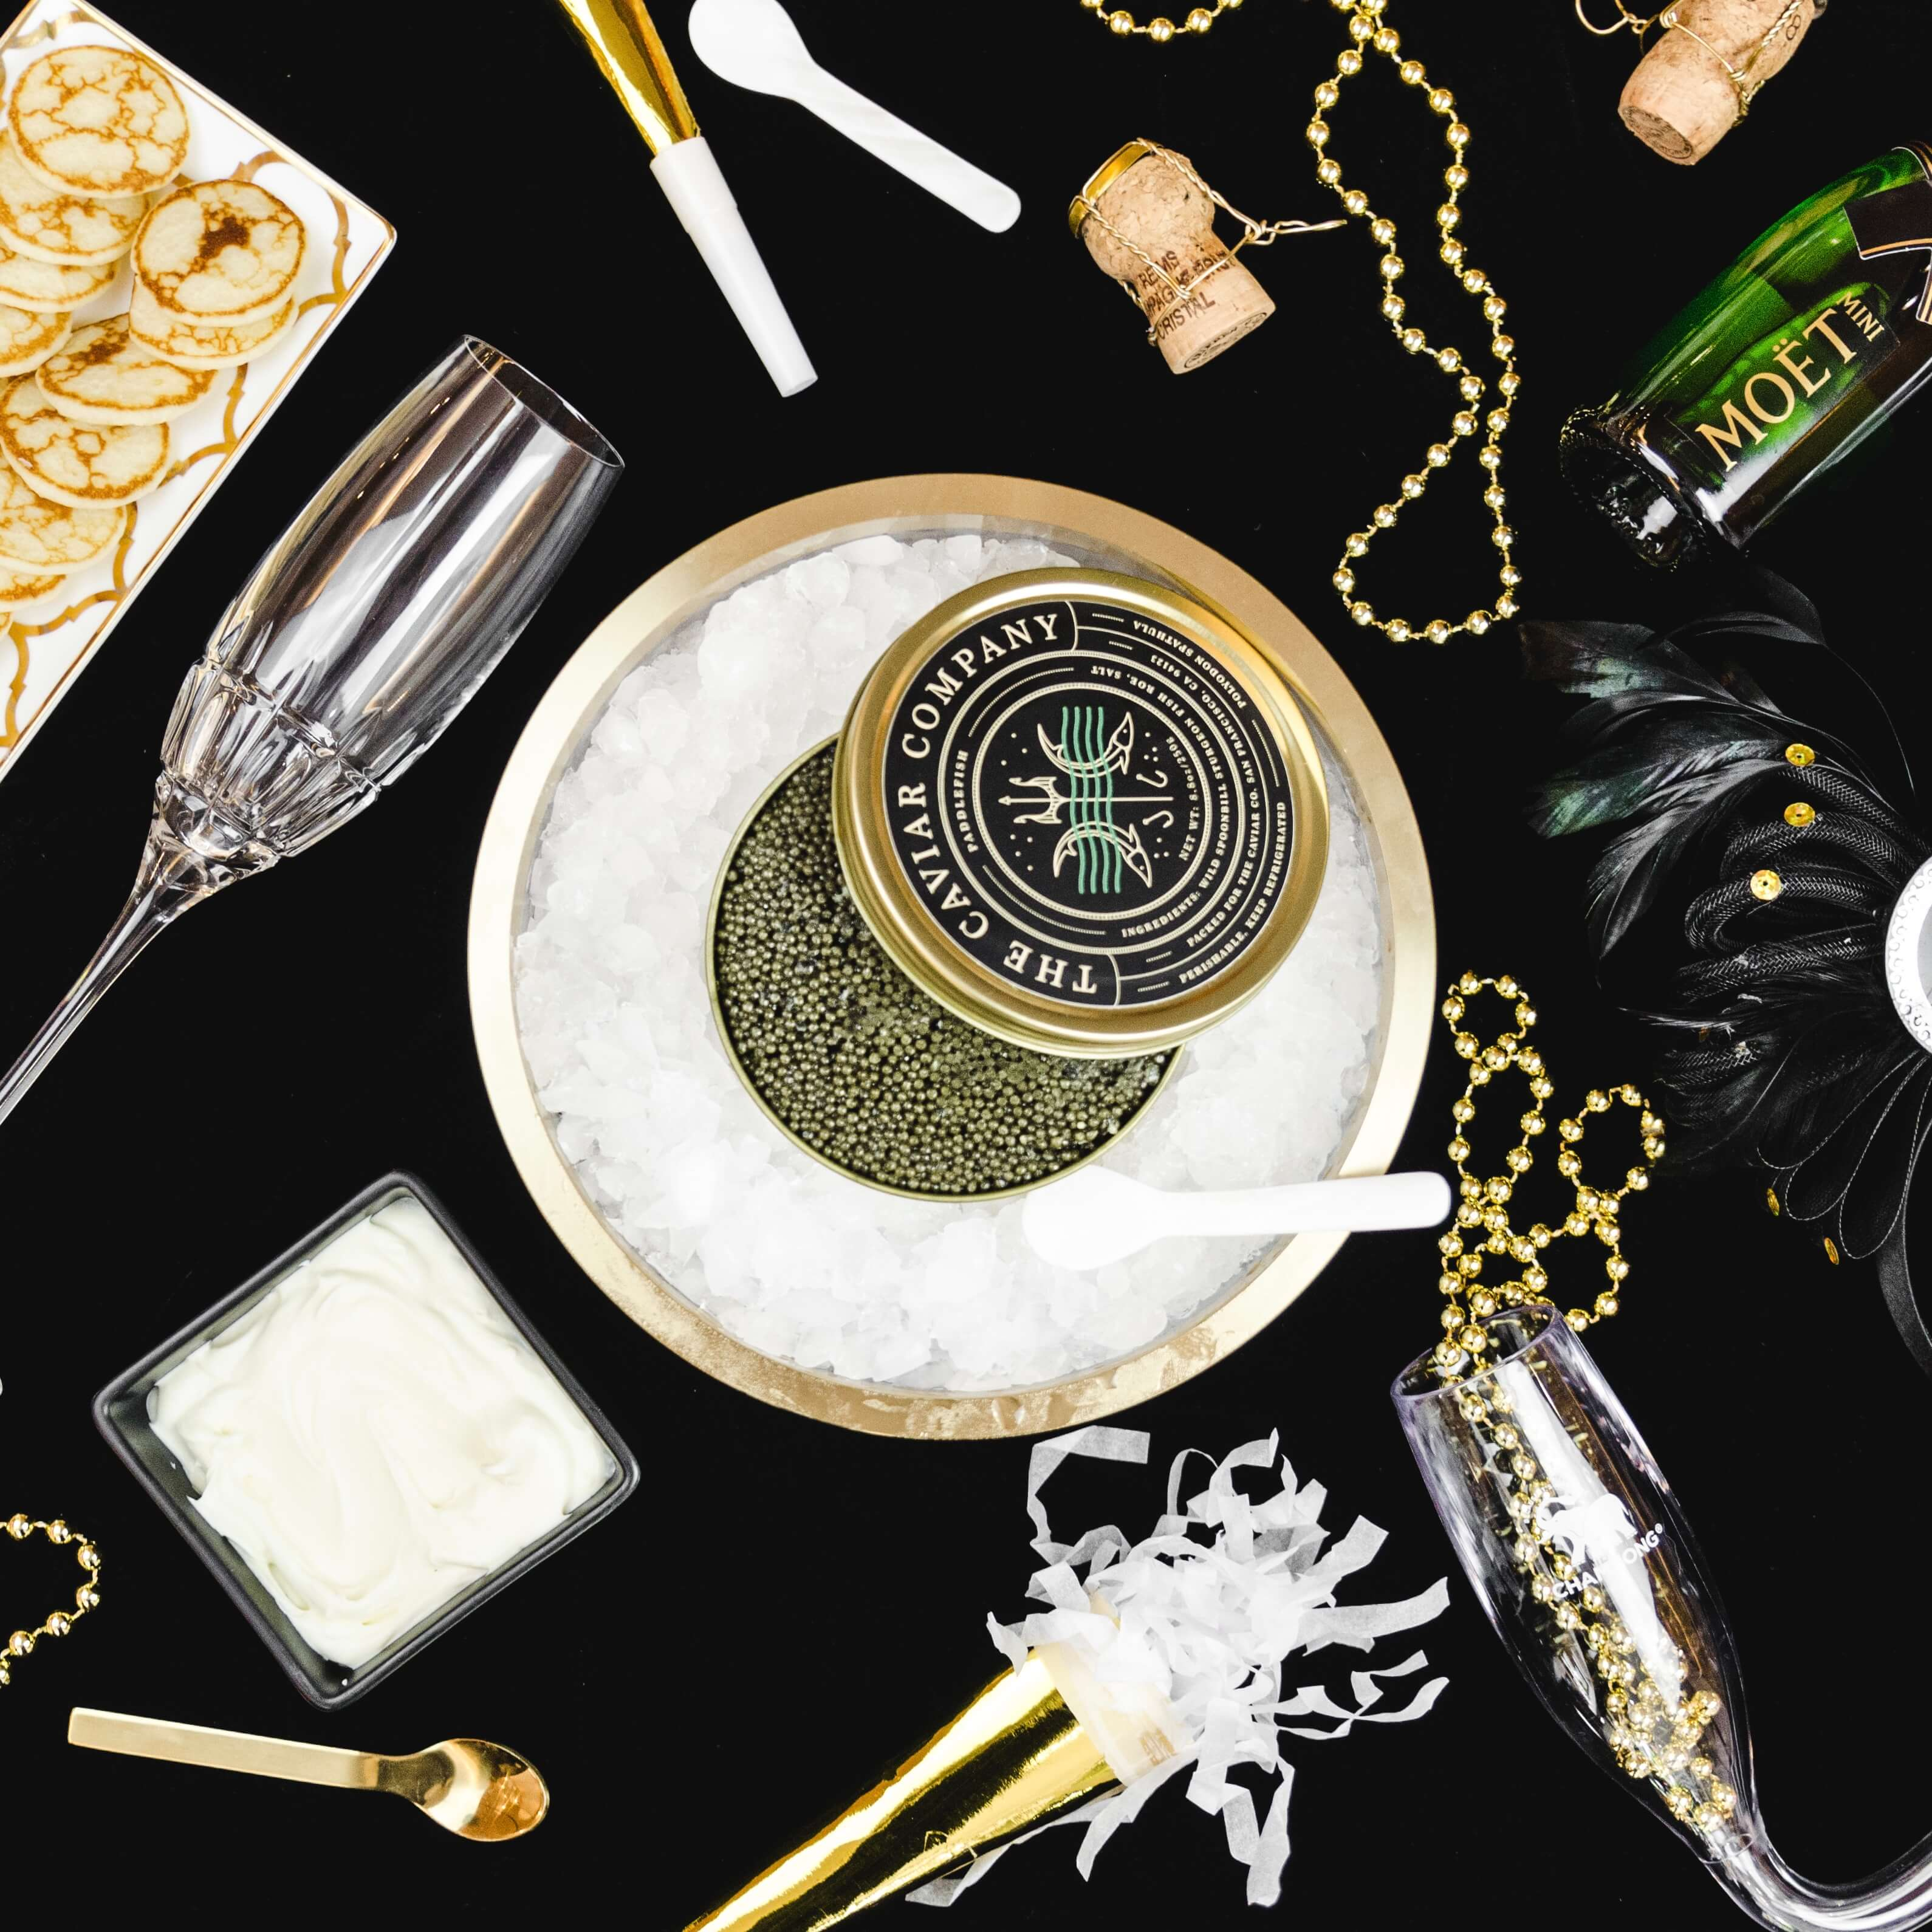 Food and Beverage The Caviar Co. Article